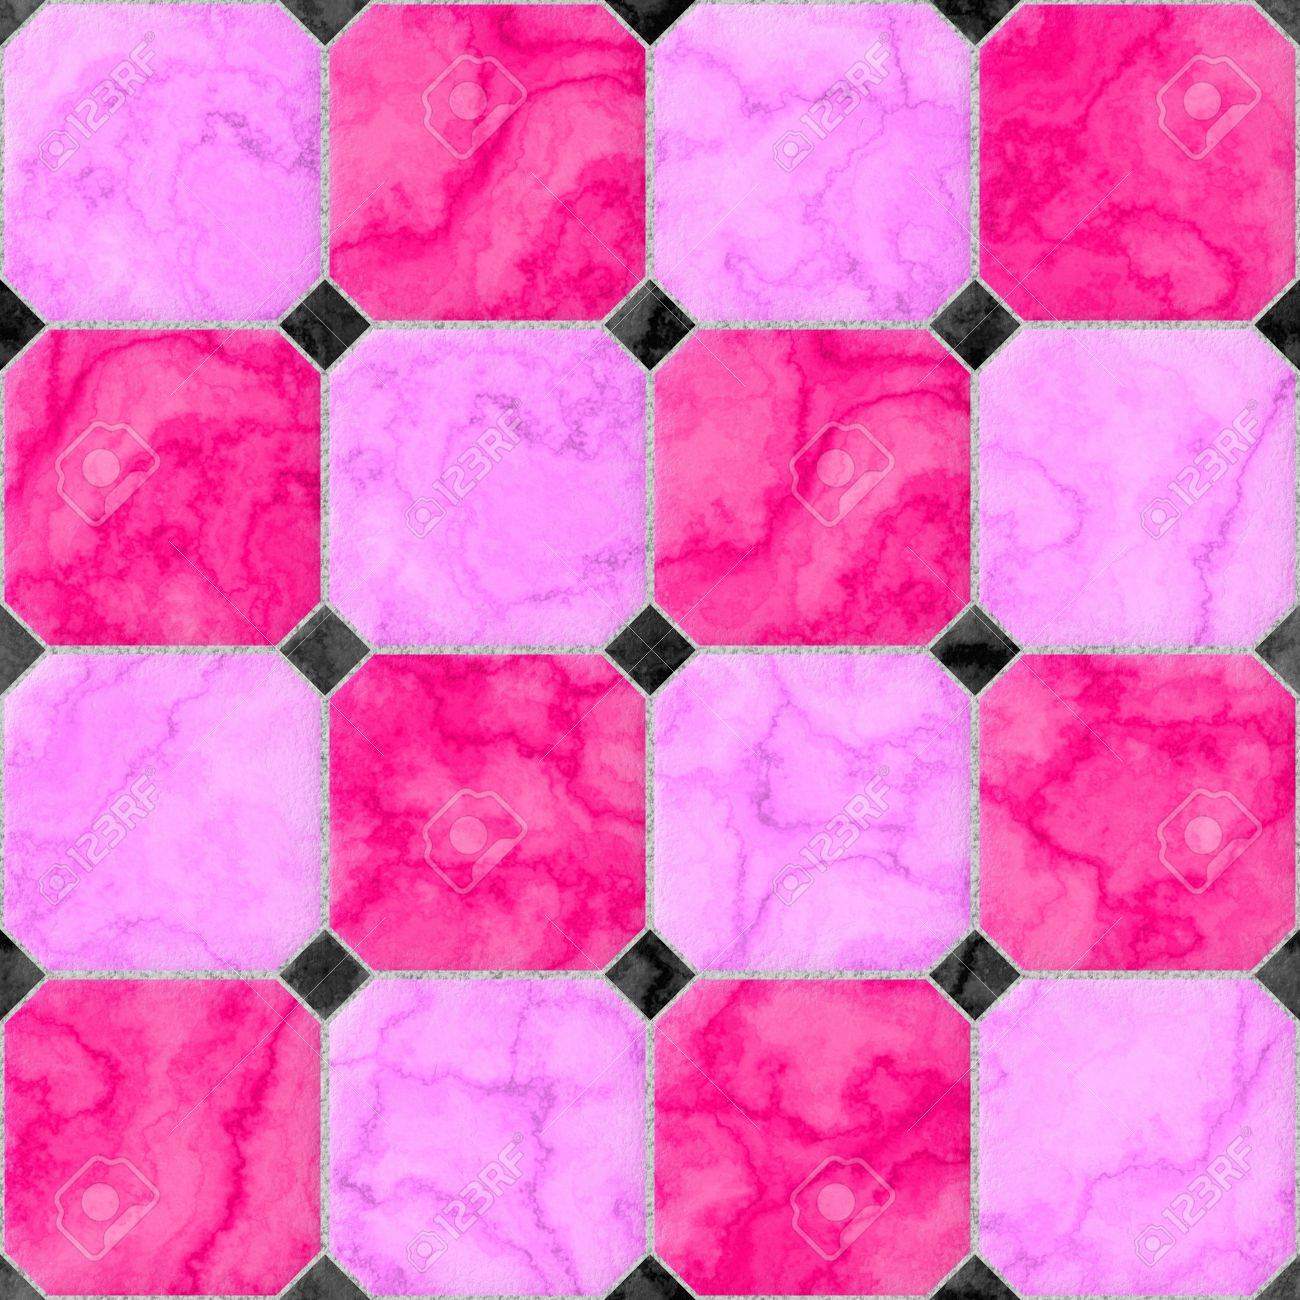 Significant pink magenta marble square floor tiles with black significant pink magenta marble square floor tiles with black rhombs and gray gap seamless pattern texture dailygadgetfo Image collections